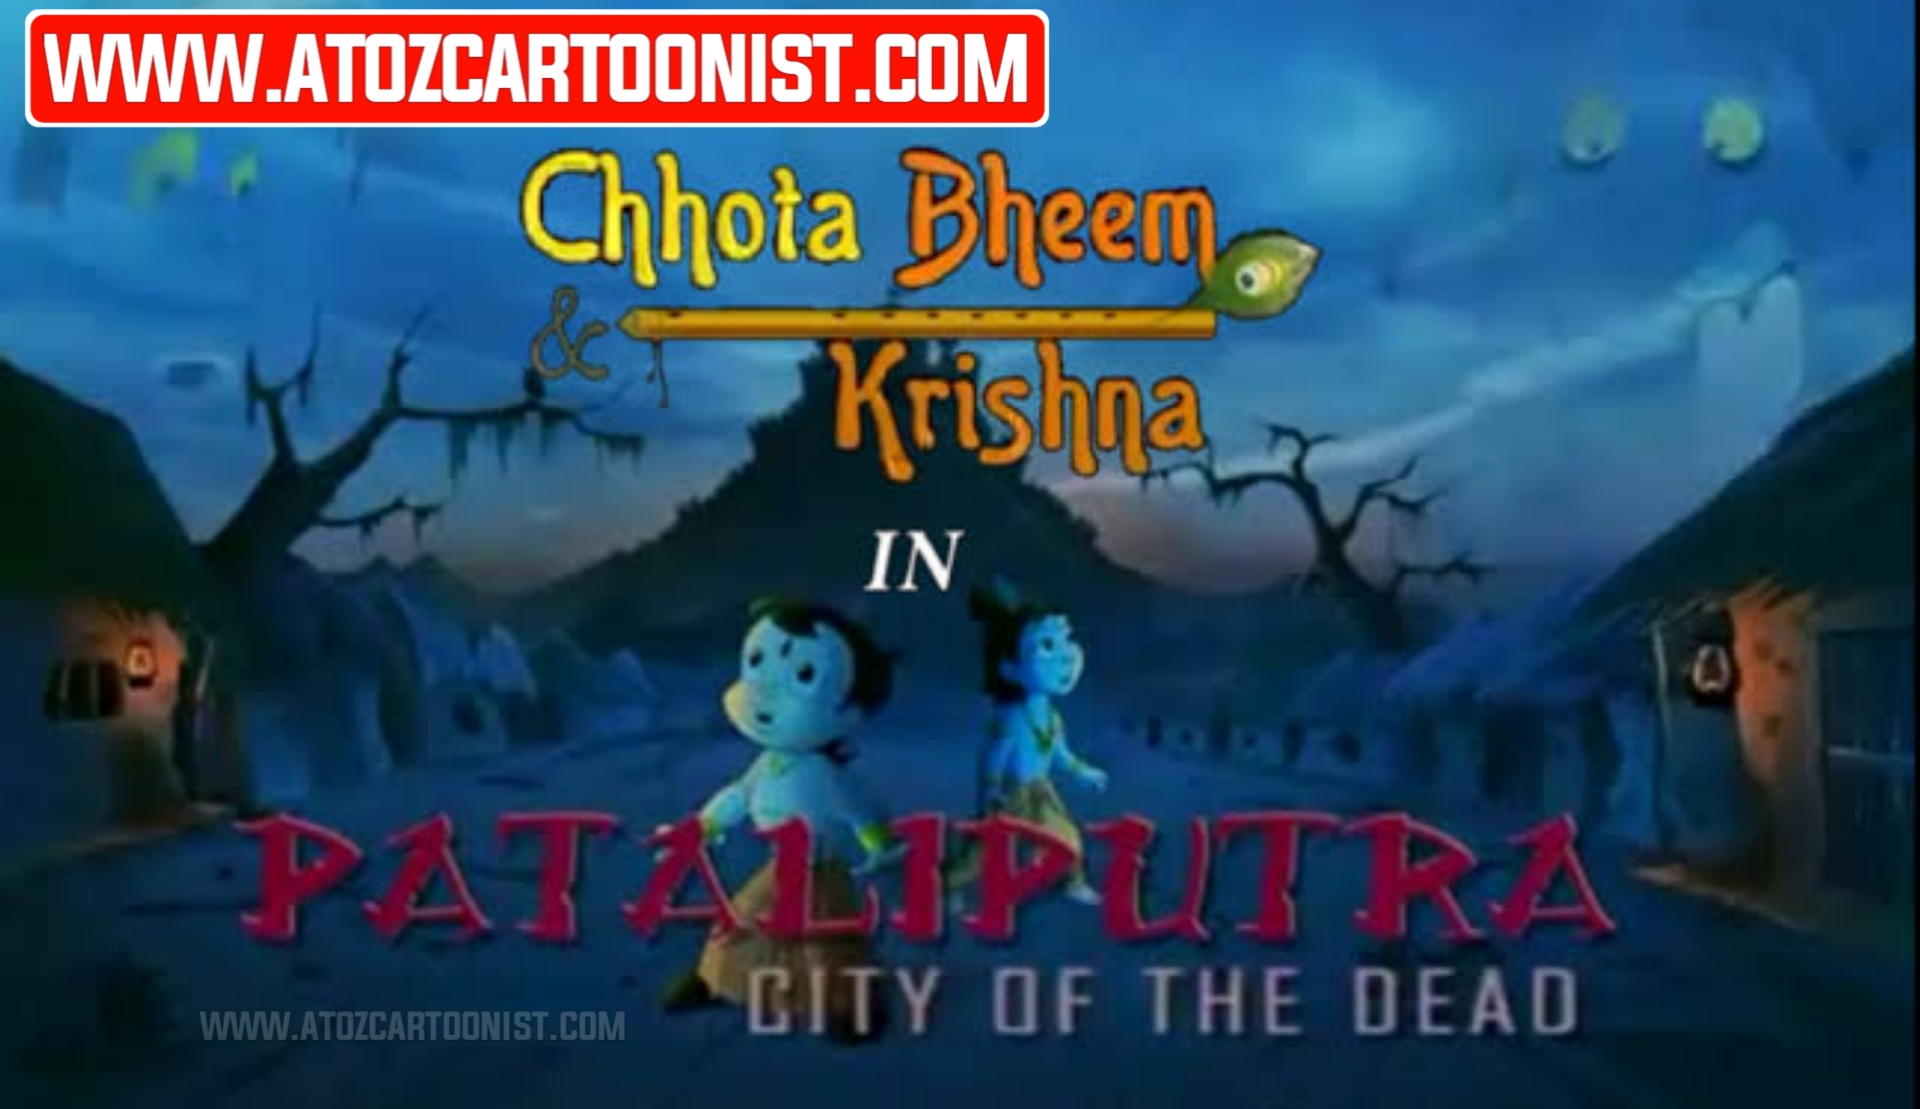 CHHOTA BHEEM & KRISHNA IN PATLIPUTRA – CITY OF THE DEAD FULL MOVIE IN HINDI & TAMIL DOWNLOAD (480P, 720P & 1080P)